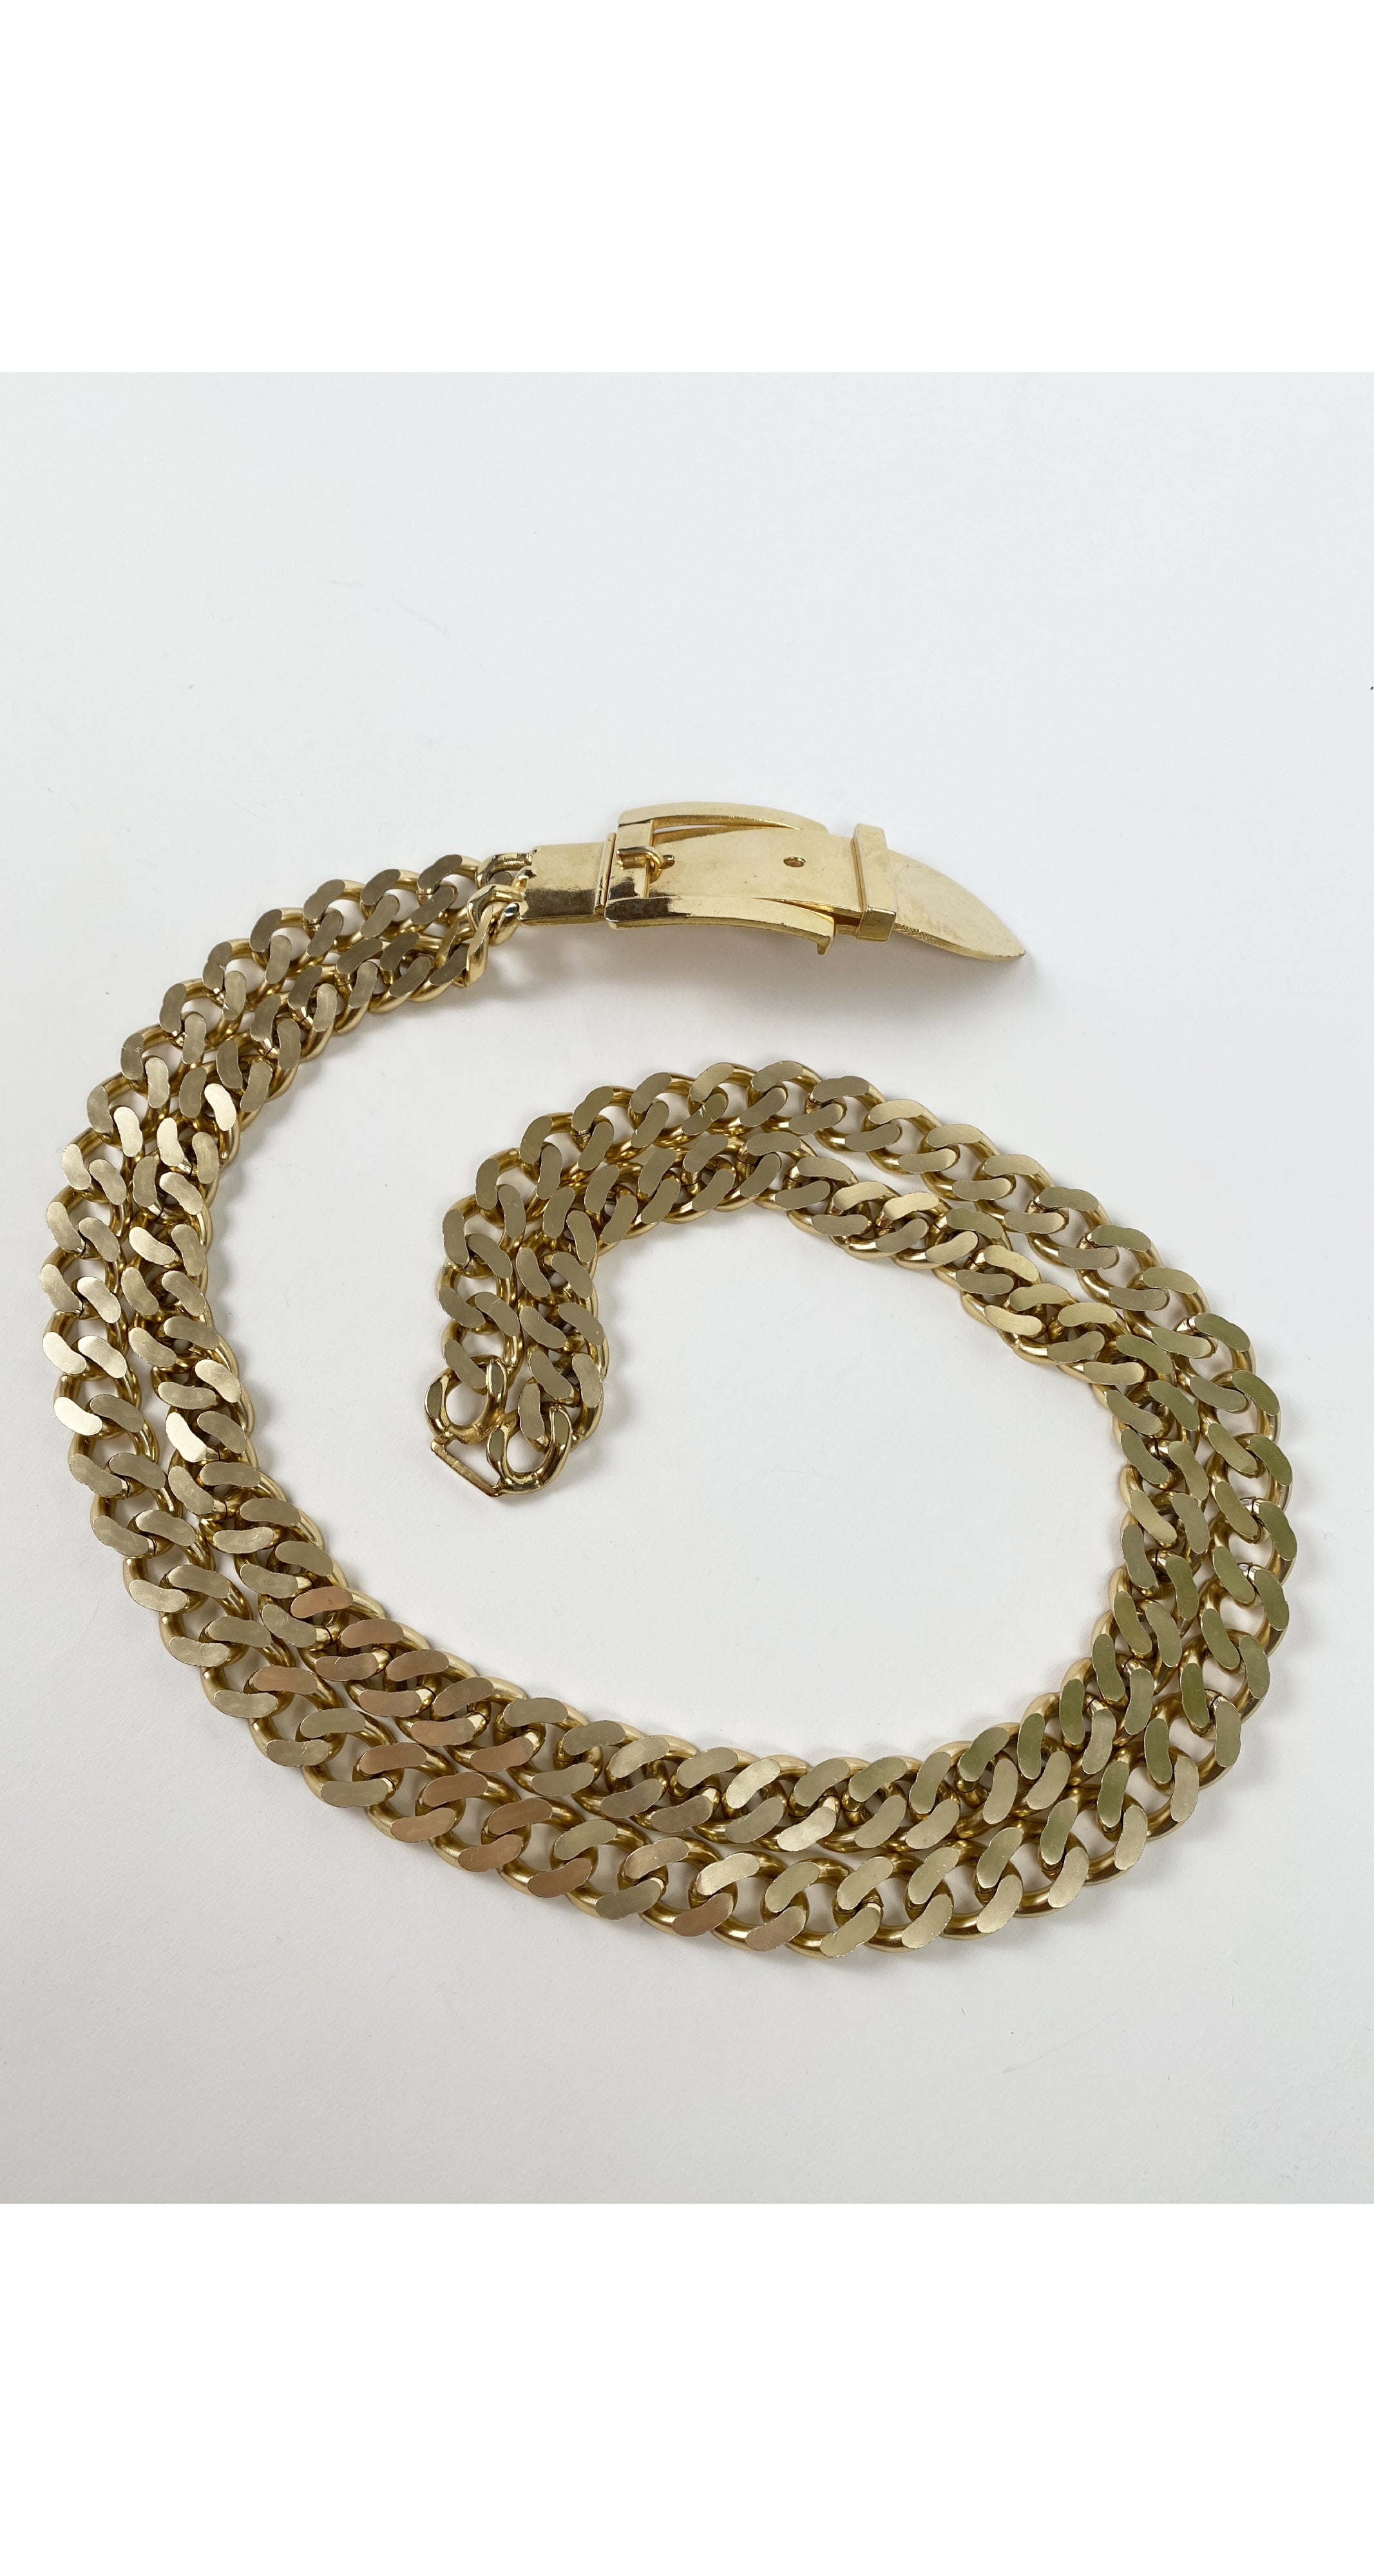 1970s Gold Trompe L'oeil Buckle Chain Belt